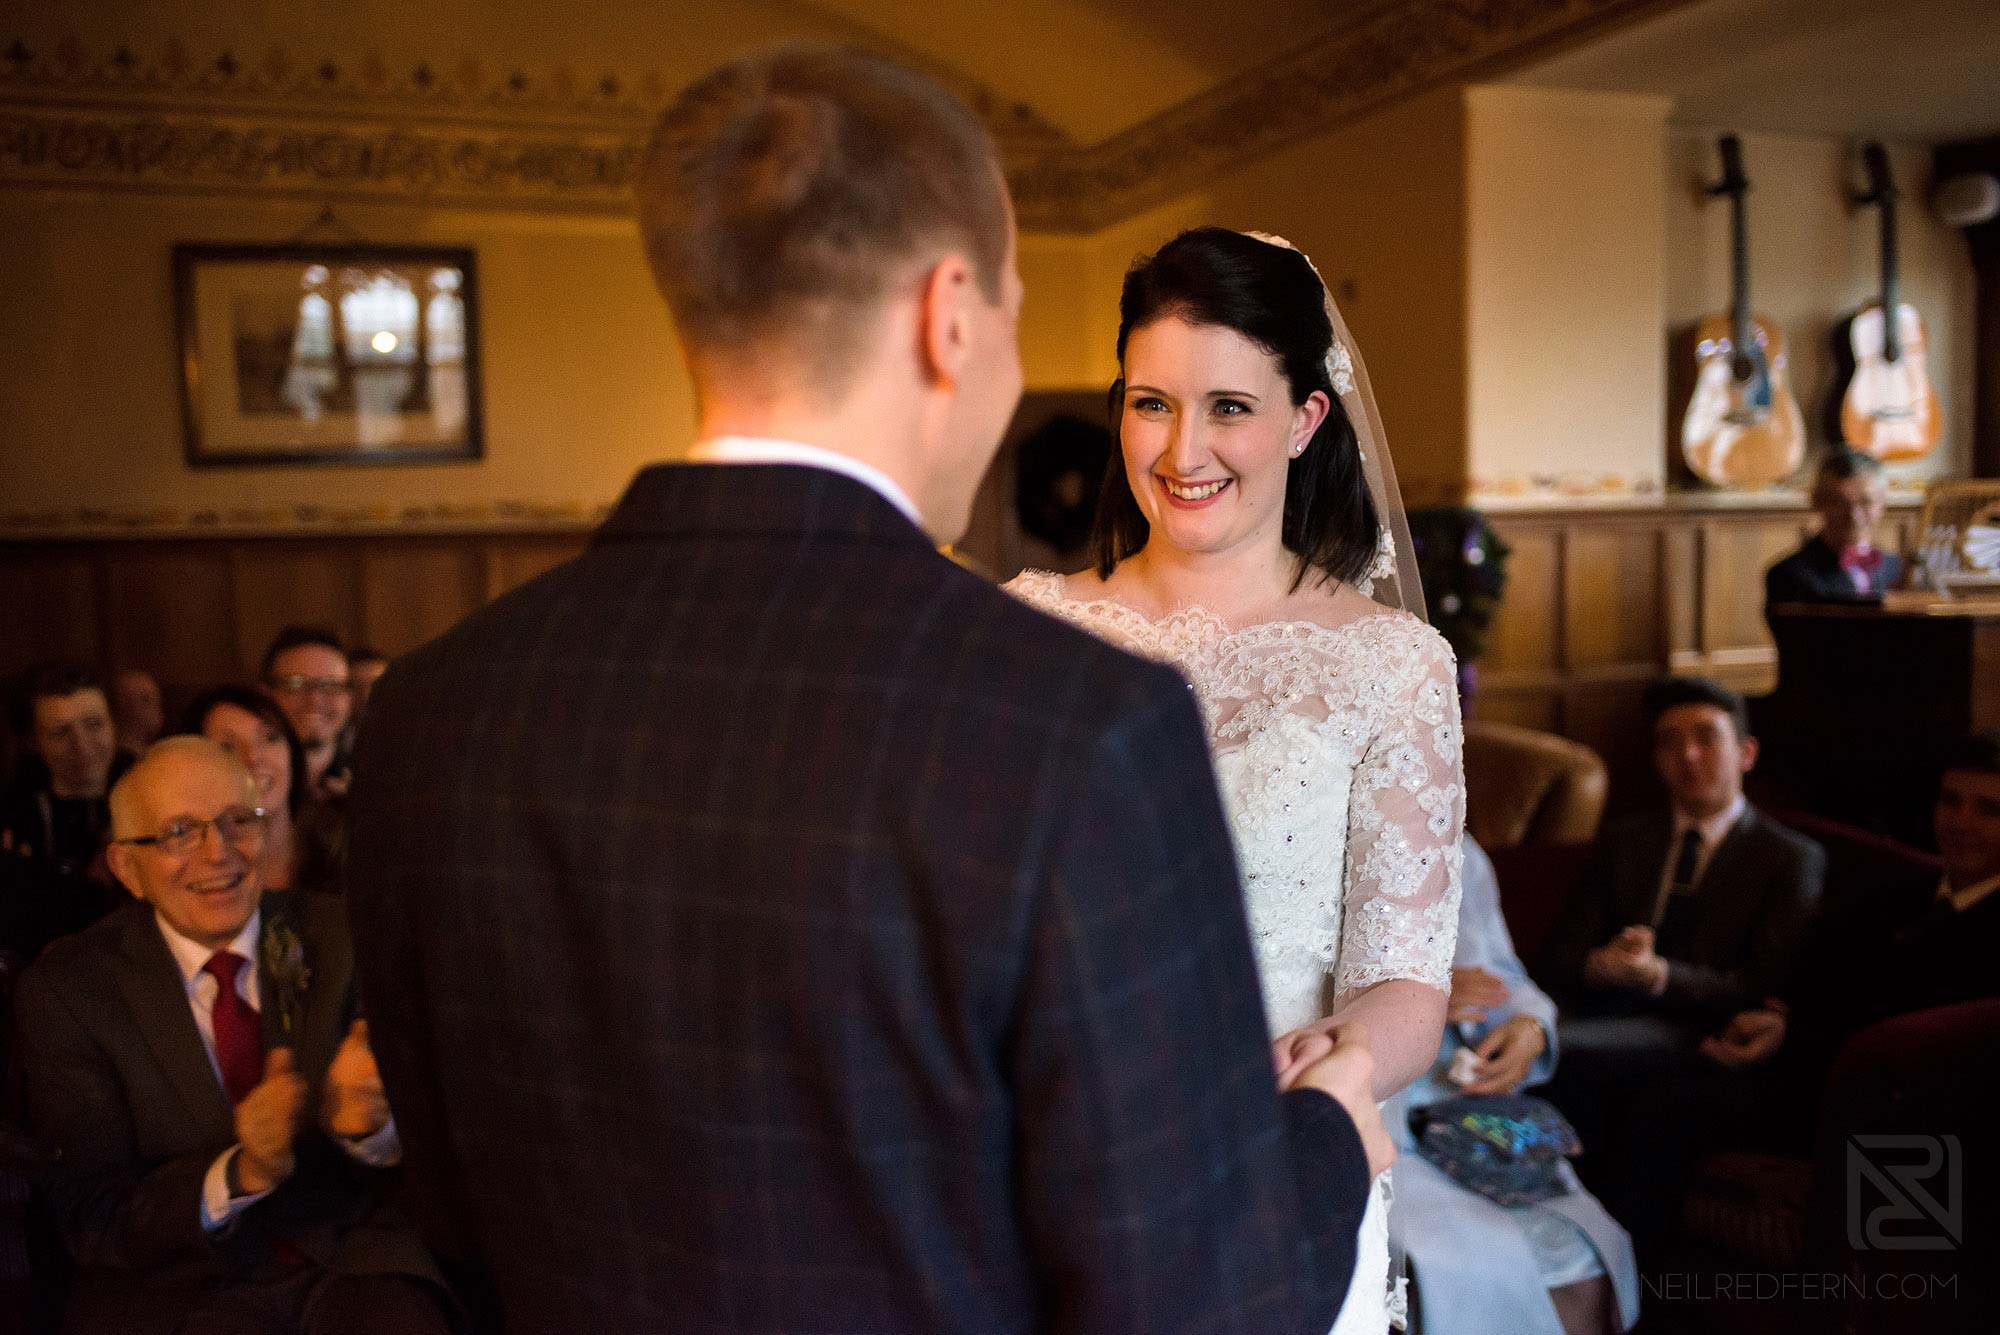 bride smiling at groom during wedding ceremony in the Lake District